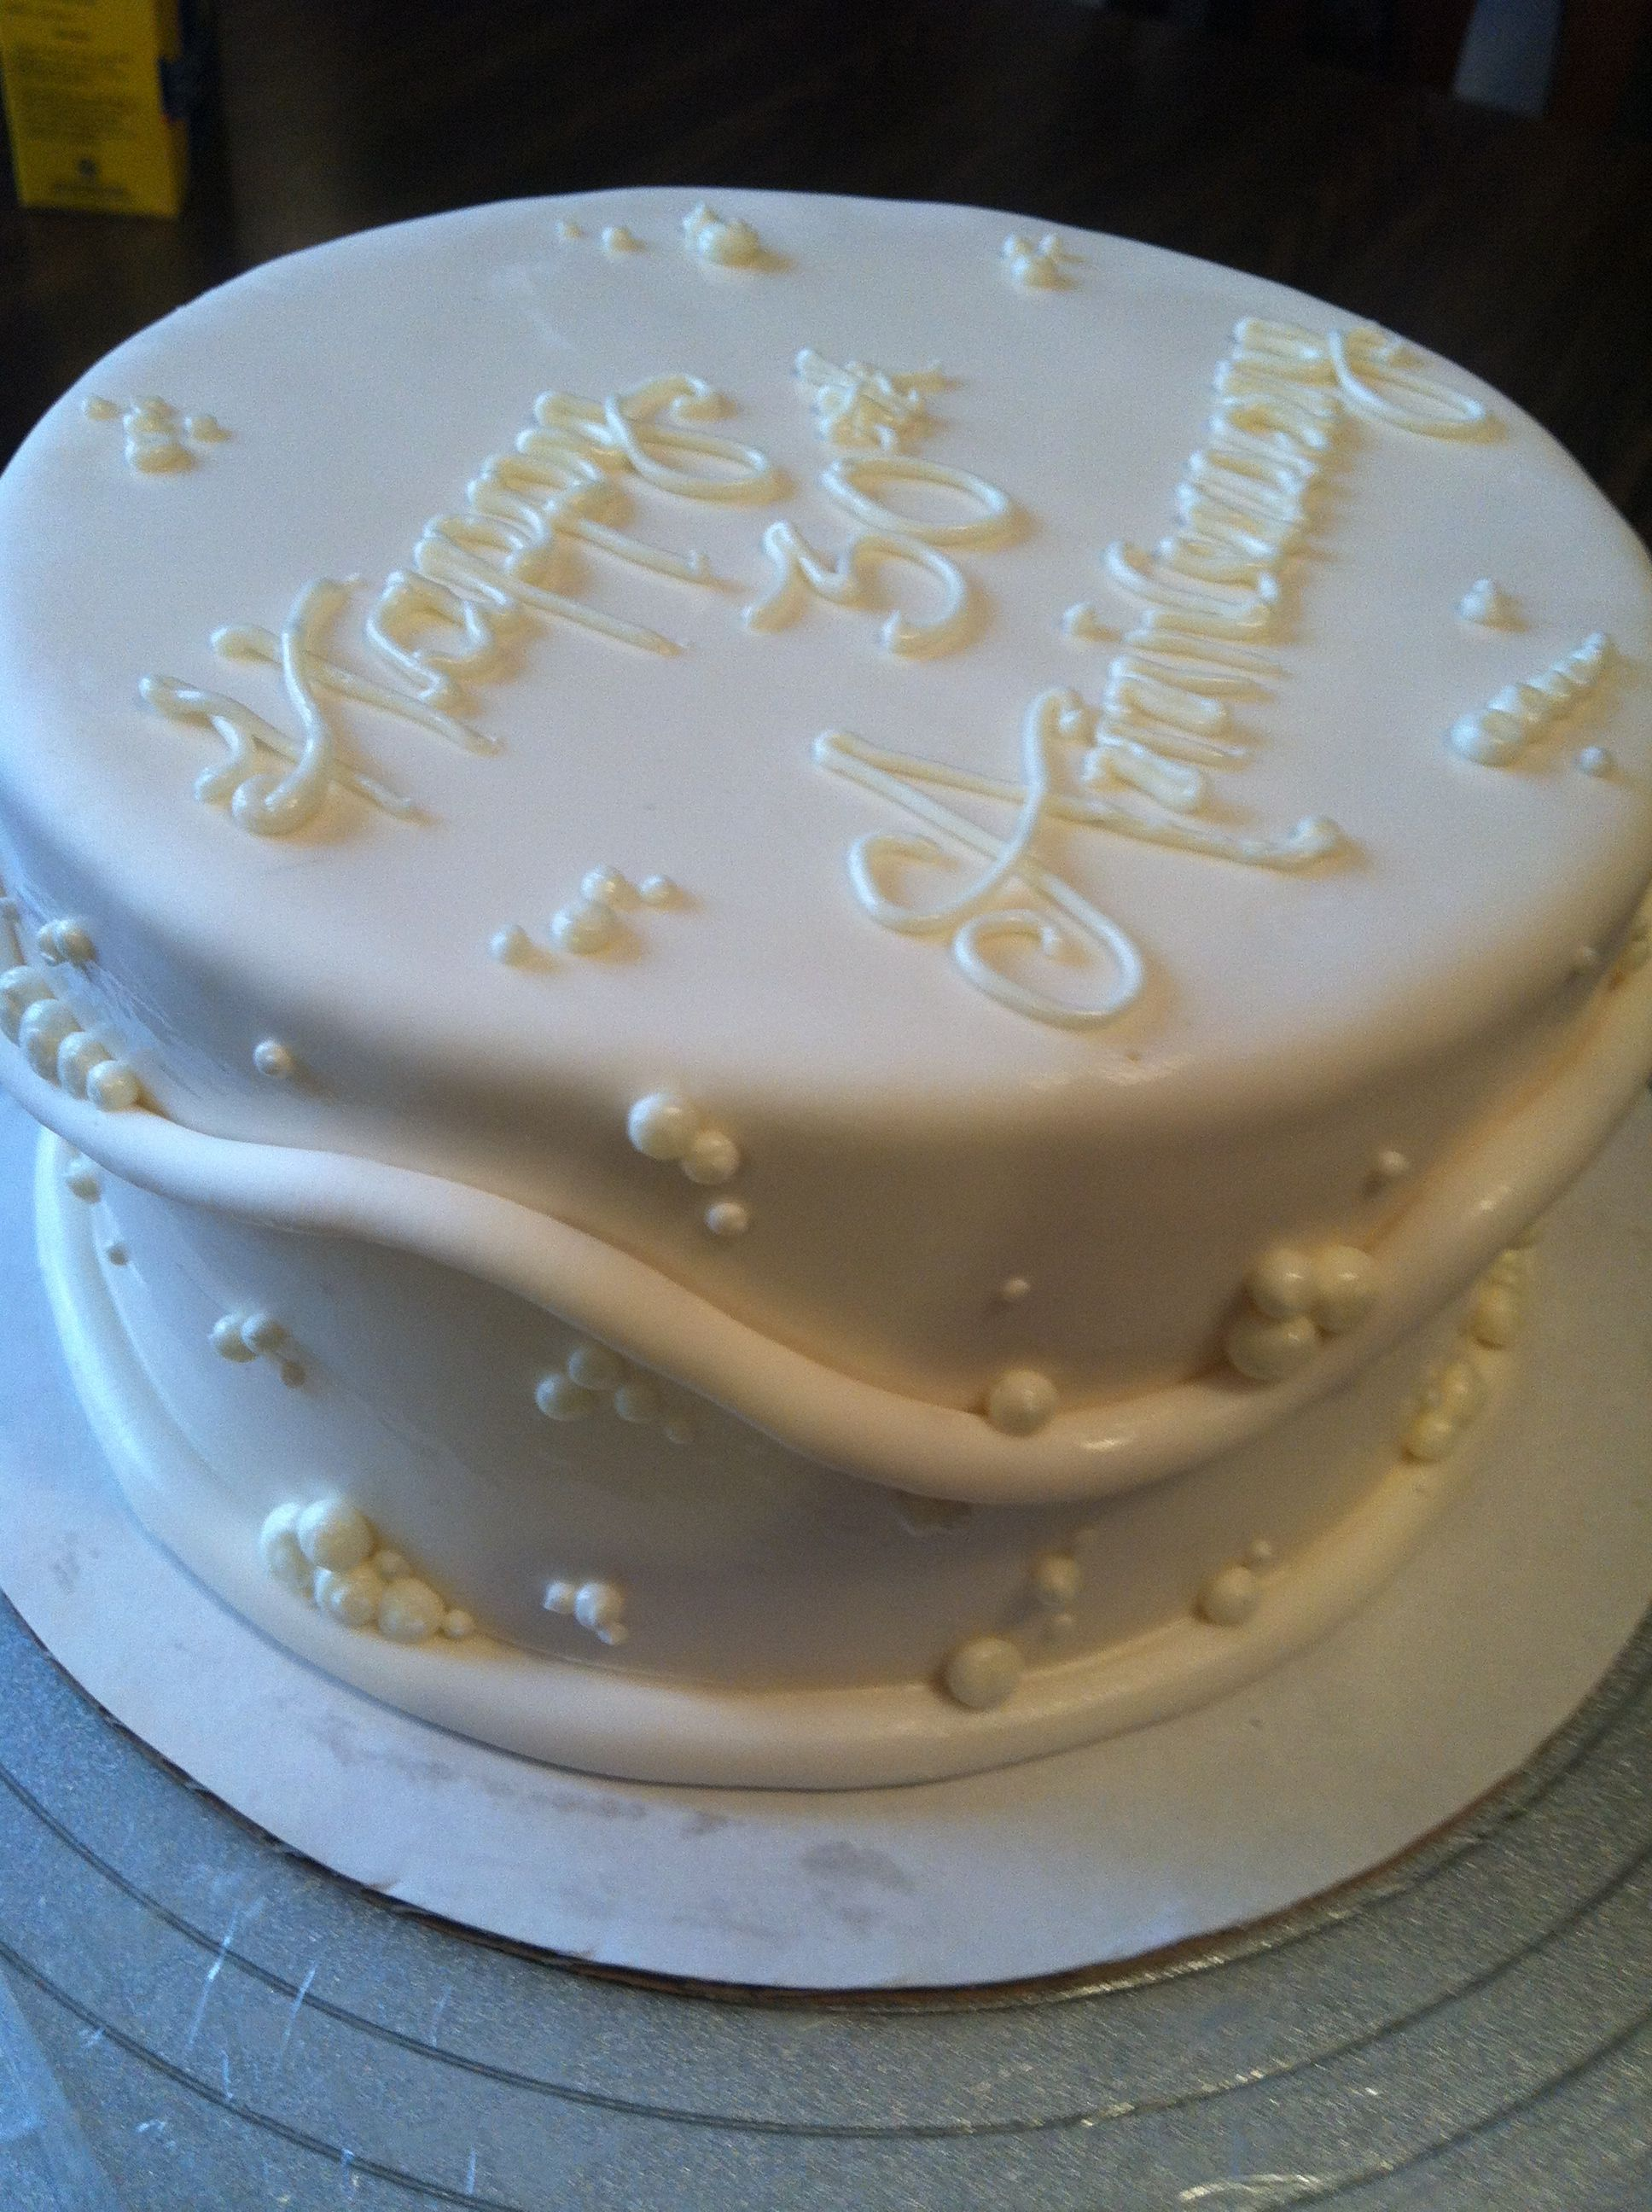 Pin By Paulina Ovallem On Food Wedding Anniversary Cakes 60th Anniversary Parties Anniversary